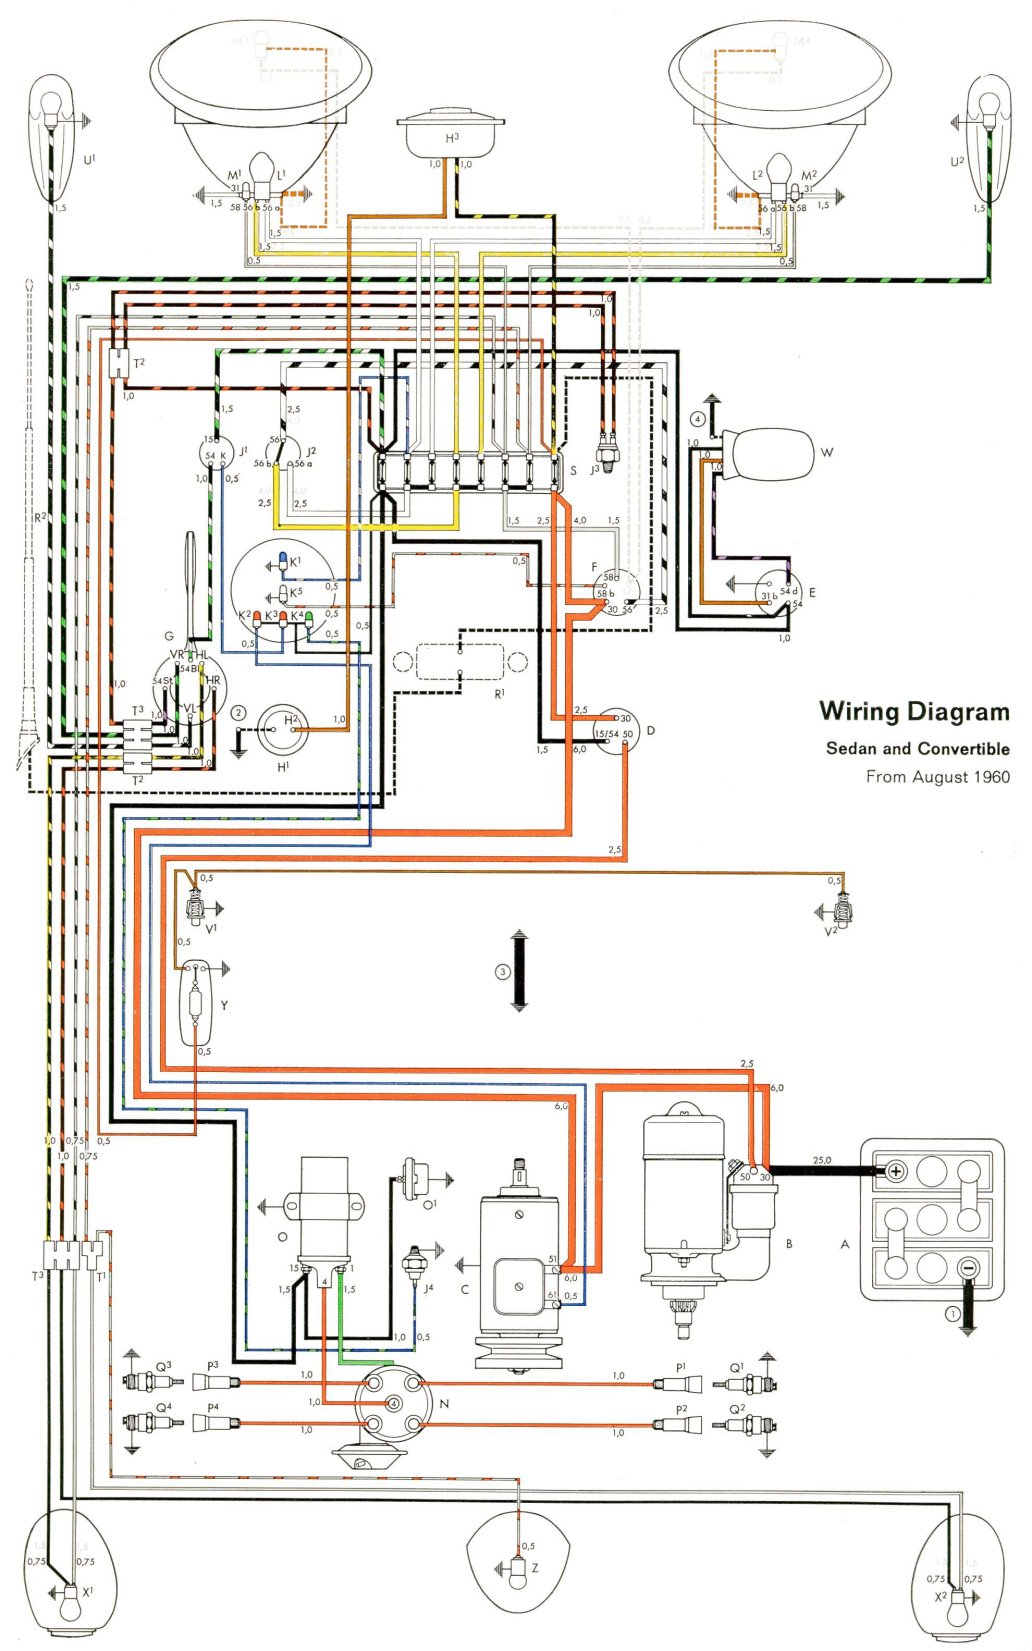 bug_61 1961 beetle wiring diagram thegoldenbug com 69 vw wiring harness at reclaimingppi.co